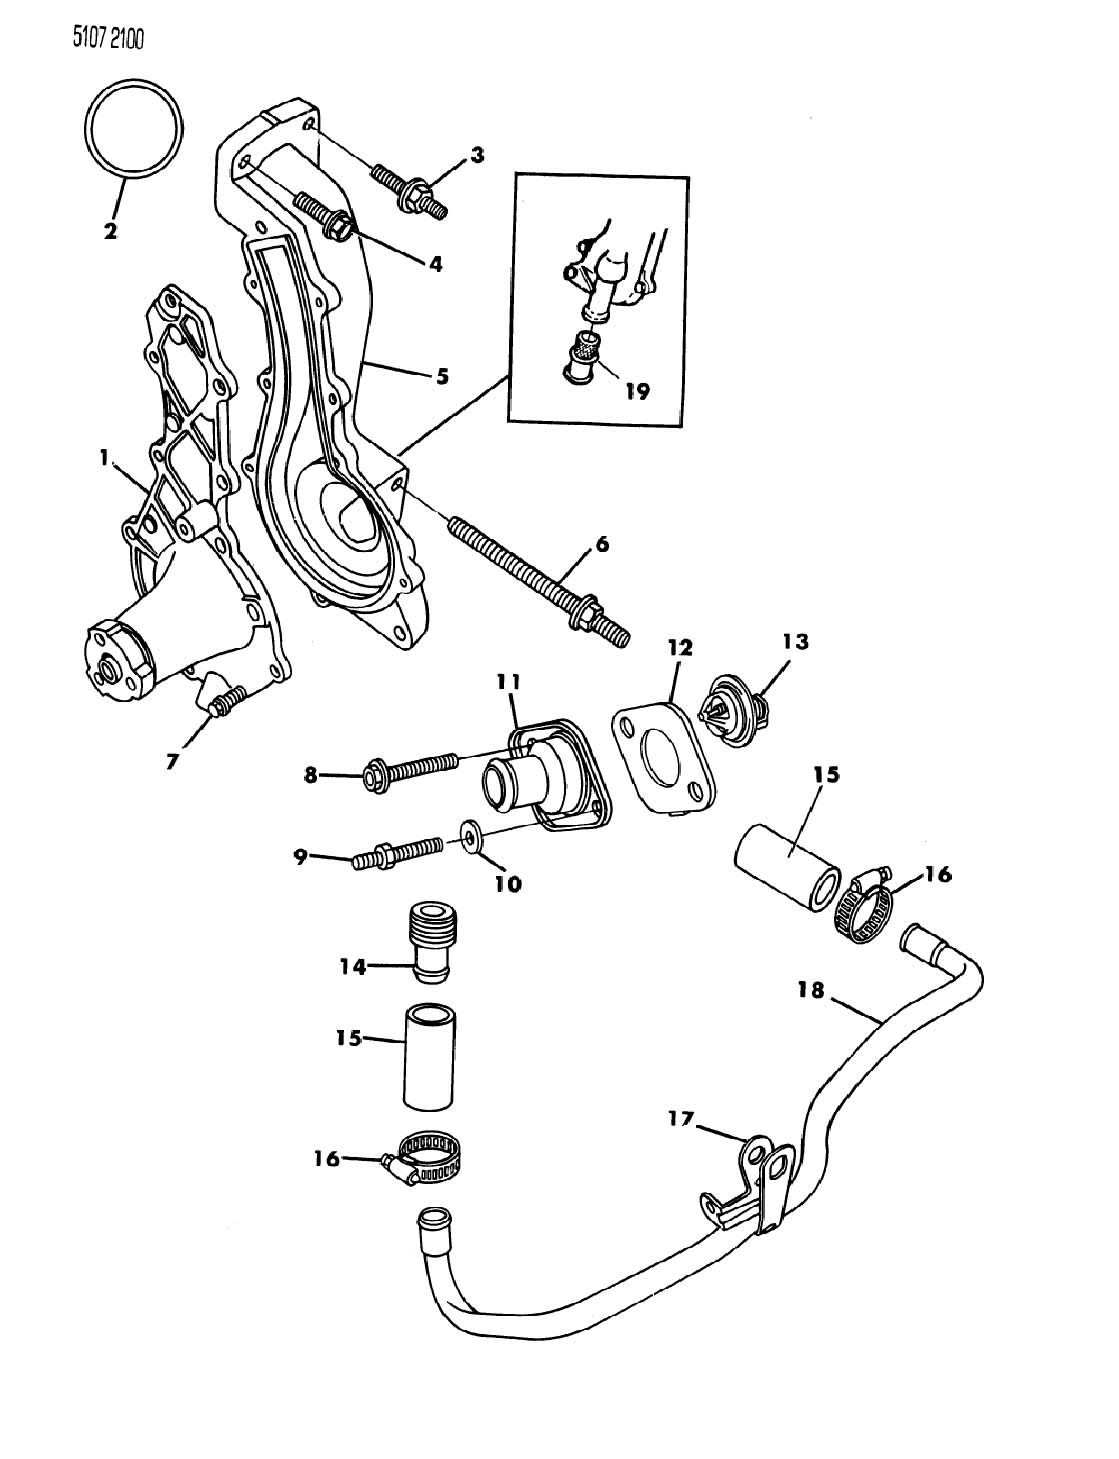 1985 Chrysler Lebaron WATER PUMP AND RELATED PARTS 2.2L ENGINE